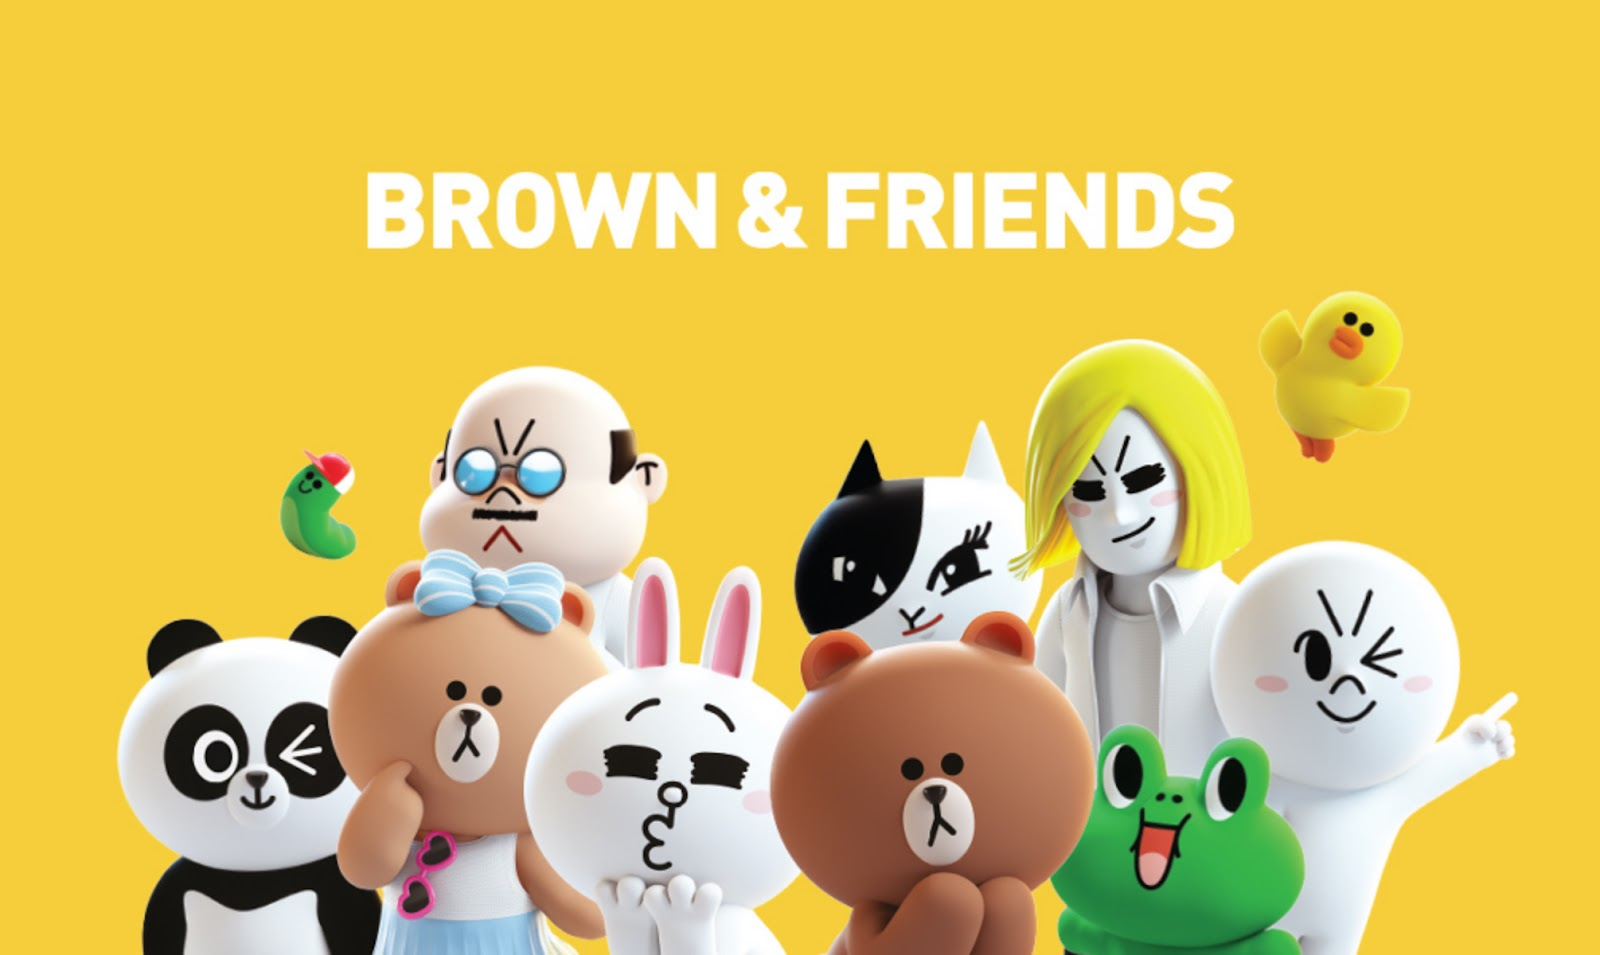 Una nuova serie animata Netflix con i personaggi di Brown & Friends